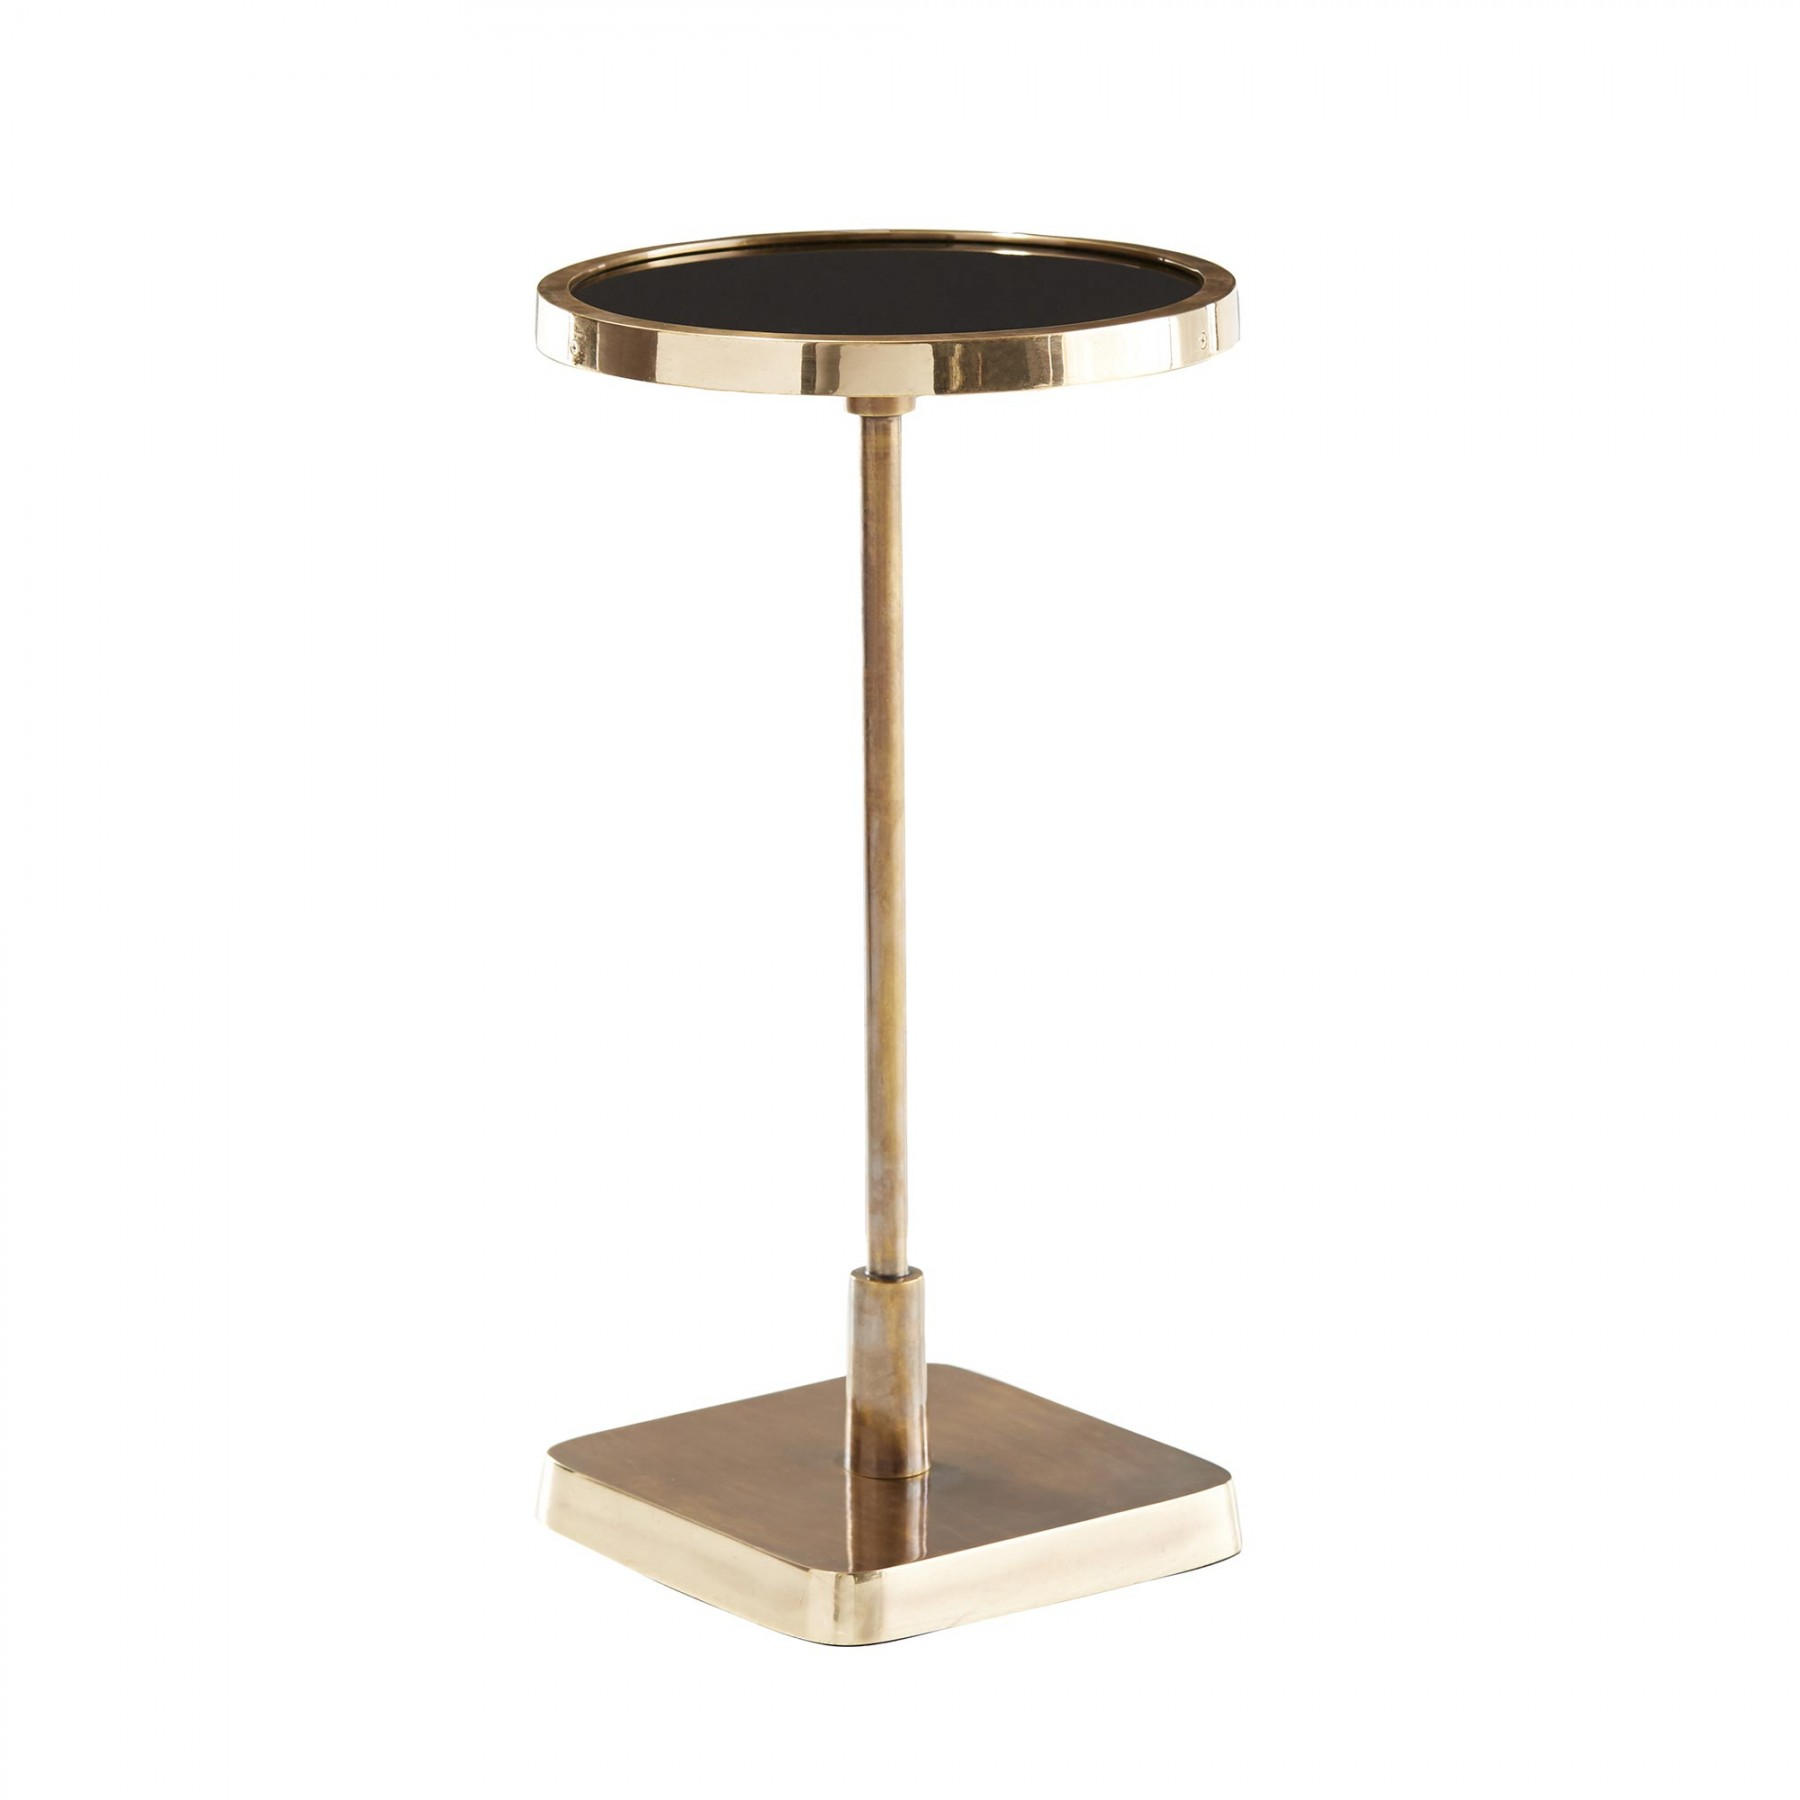 kaela round accent table bedroom lights vintage sofa designs wood and glass end tables extra tall lamps metal cube side wide bedside cabinets sheesham furniture counter height